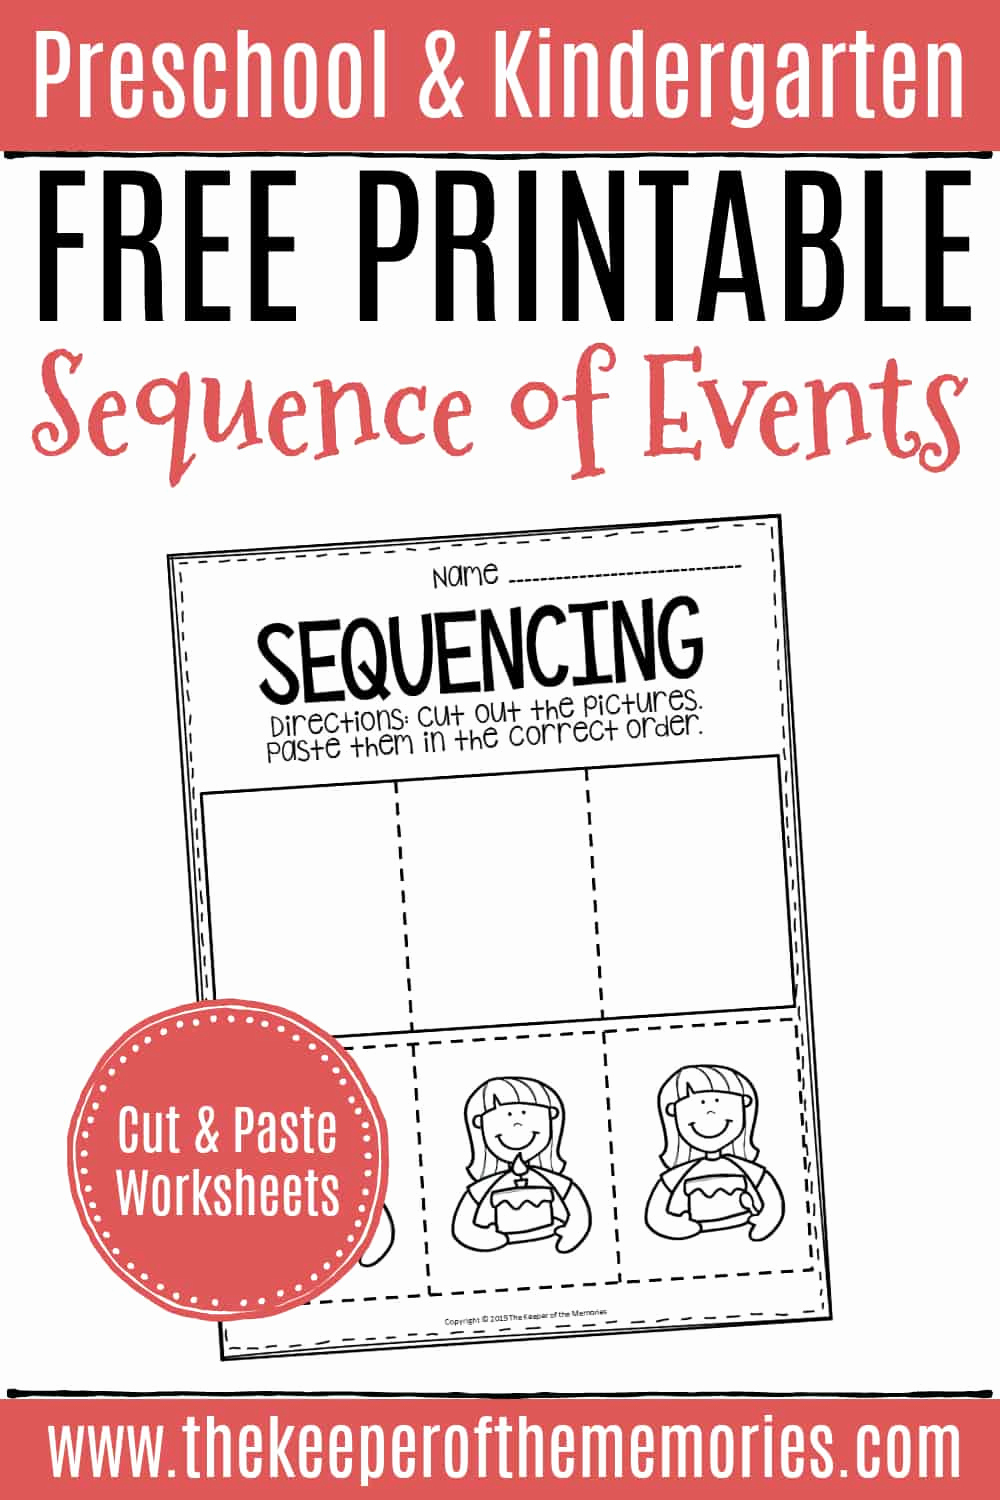 Order Of events Worksheets Lovely Free Printable Sequence Of events Preschool Worksheets